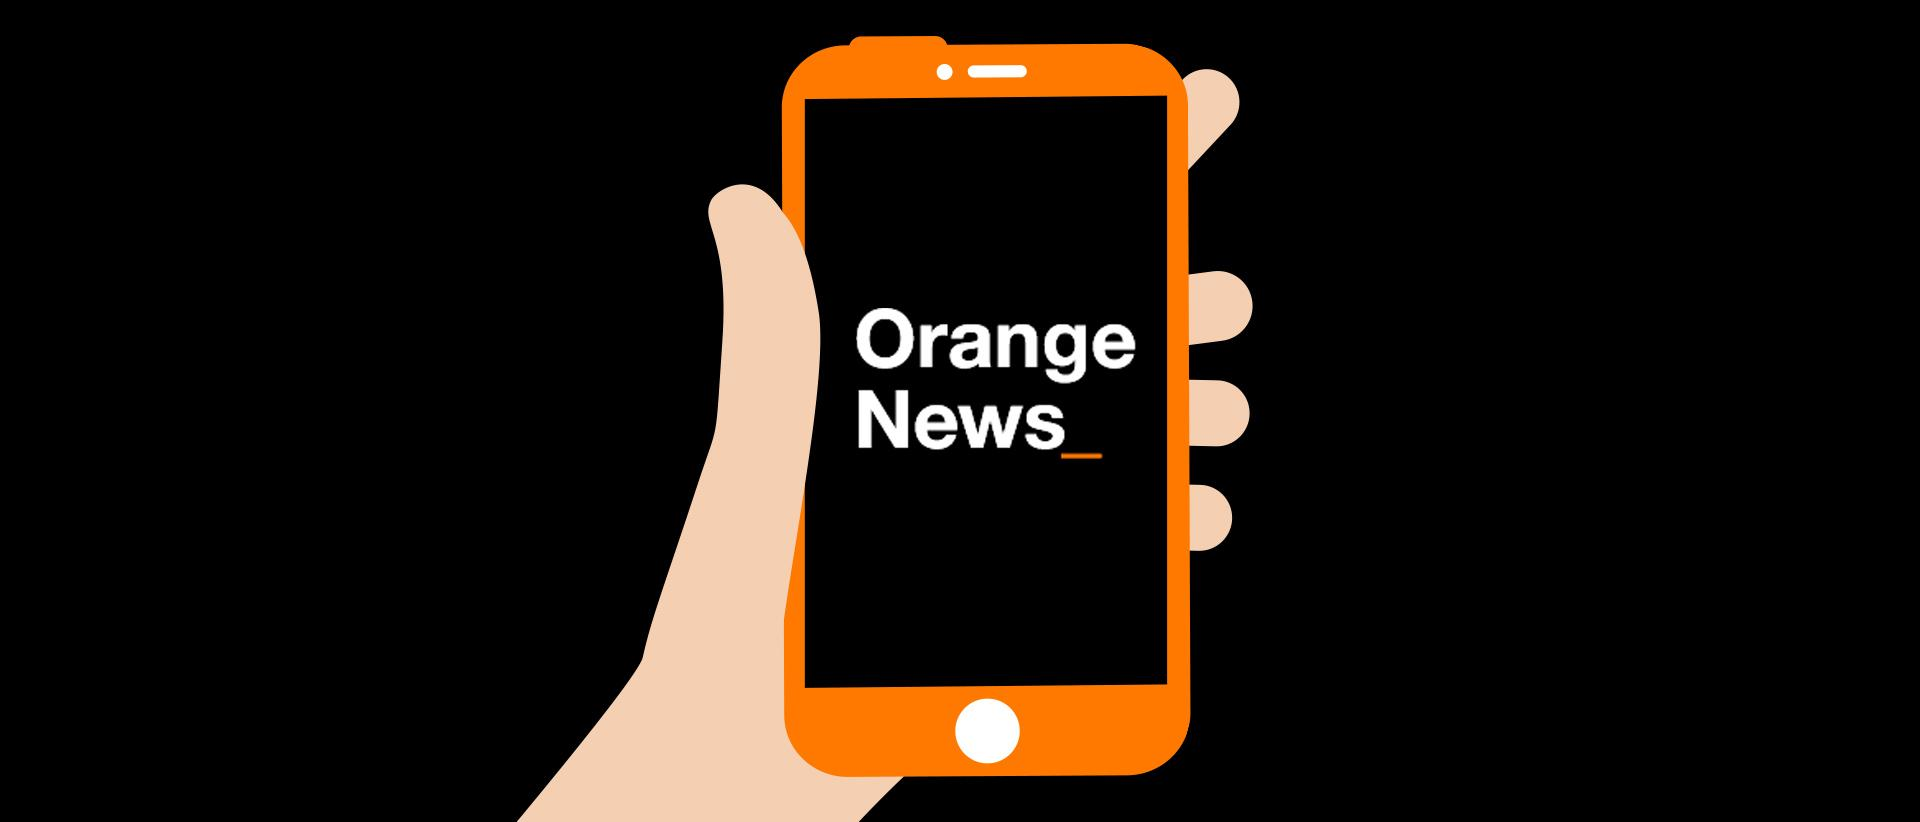 Le logo de l'application Orange news dans une illustration de mobile